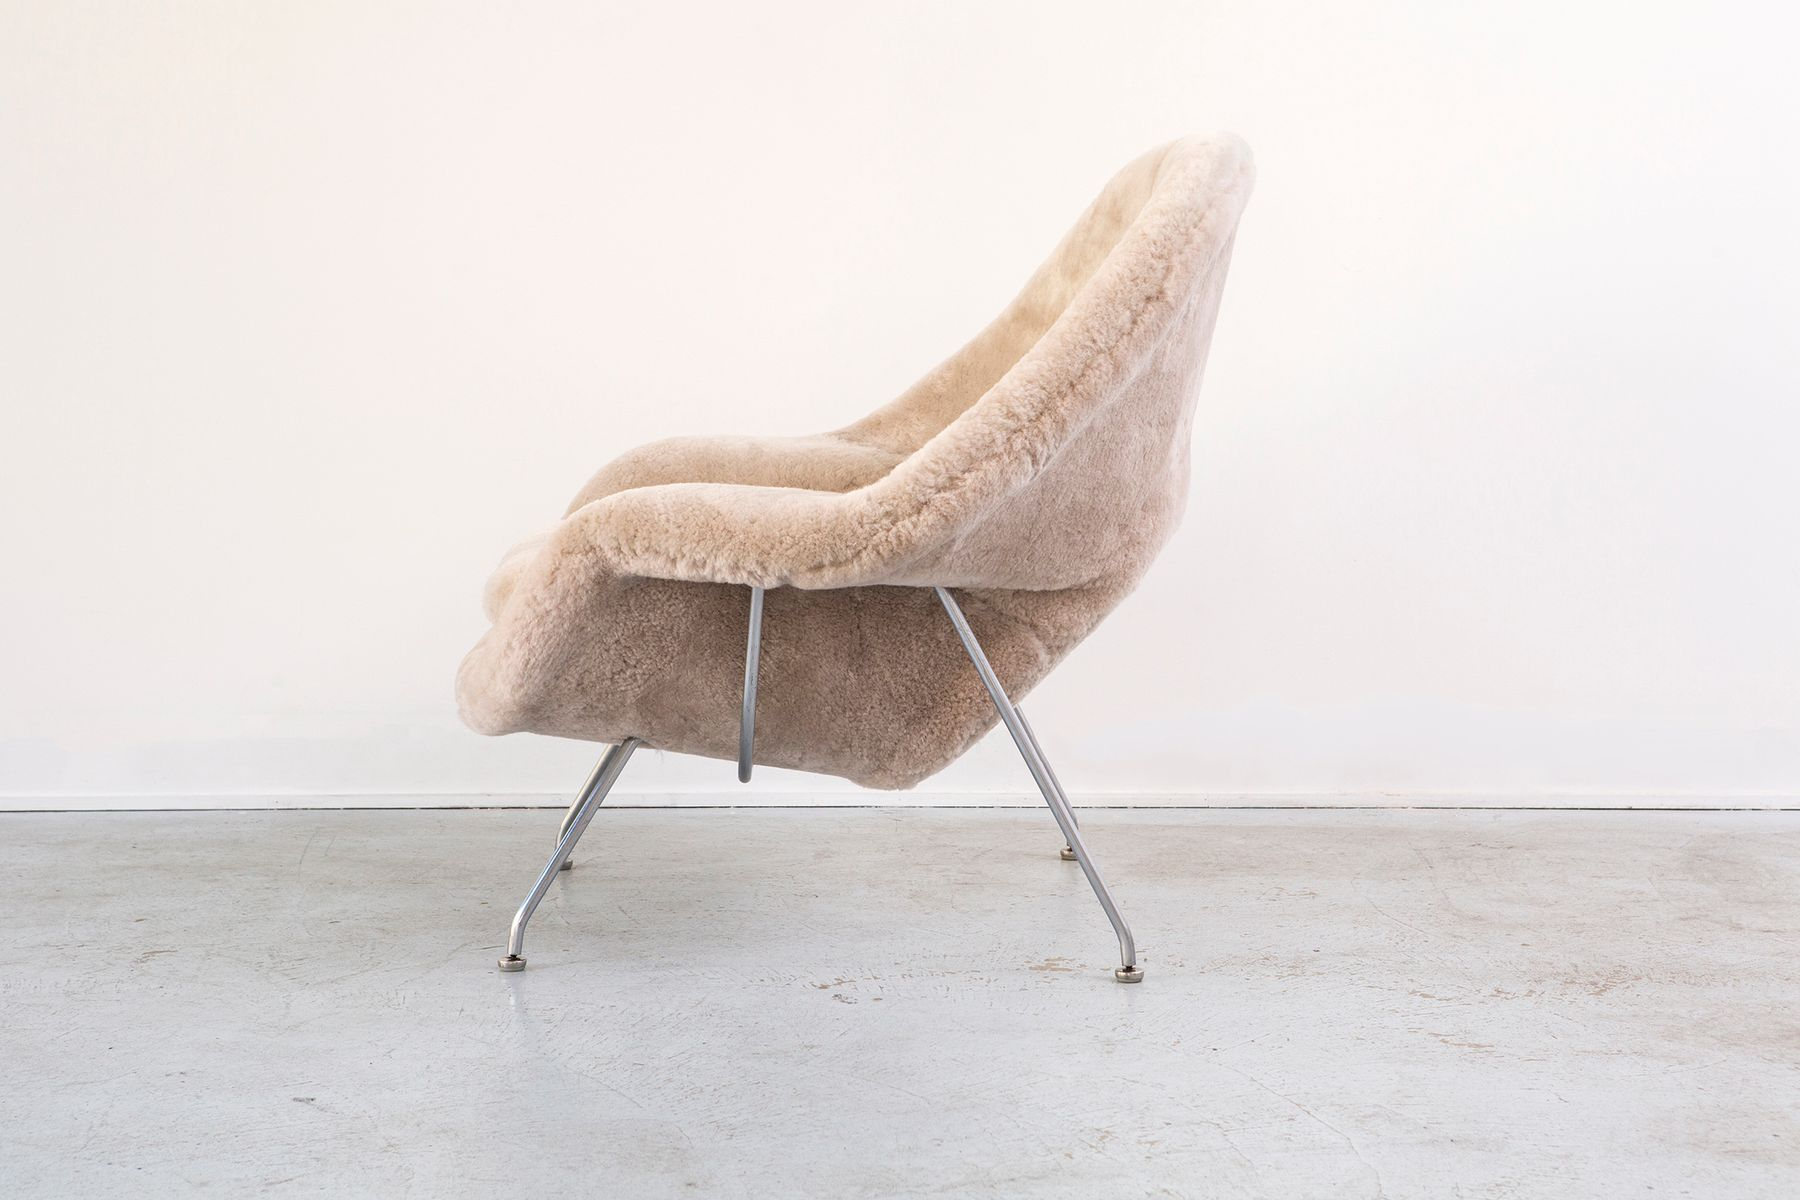 Womb chair by eero saarinen for knoll international 1960s for sale at pamono - Vintage womb chair for sale ...